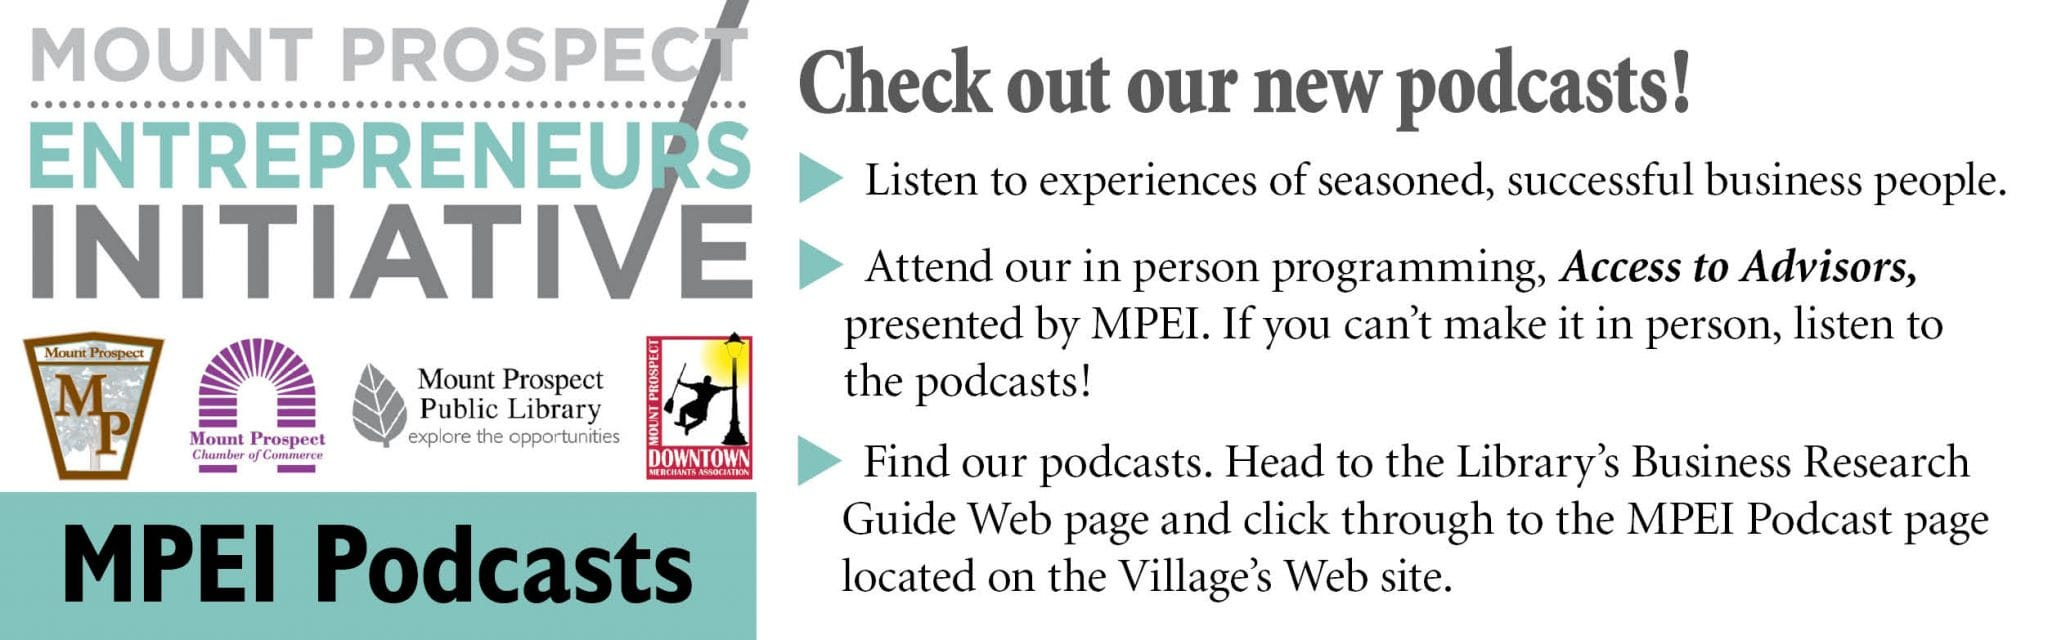 Check out our new podcasts! Attend our in person programming, Access to Advisors, presented by MPEI. If you can't make it in person, listen to the podcasts!